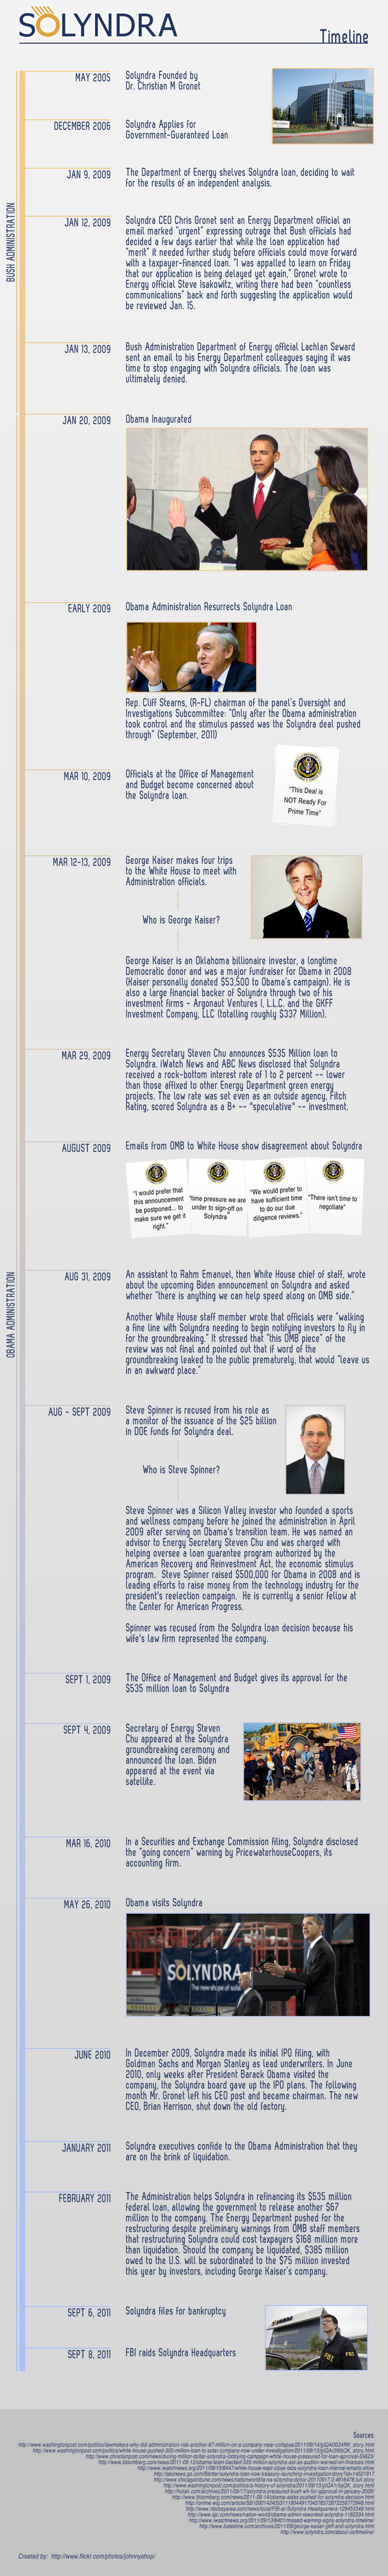 [Infographic] Solyndra Timeline